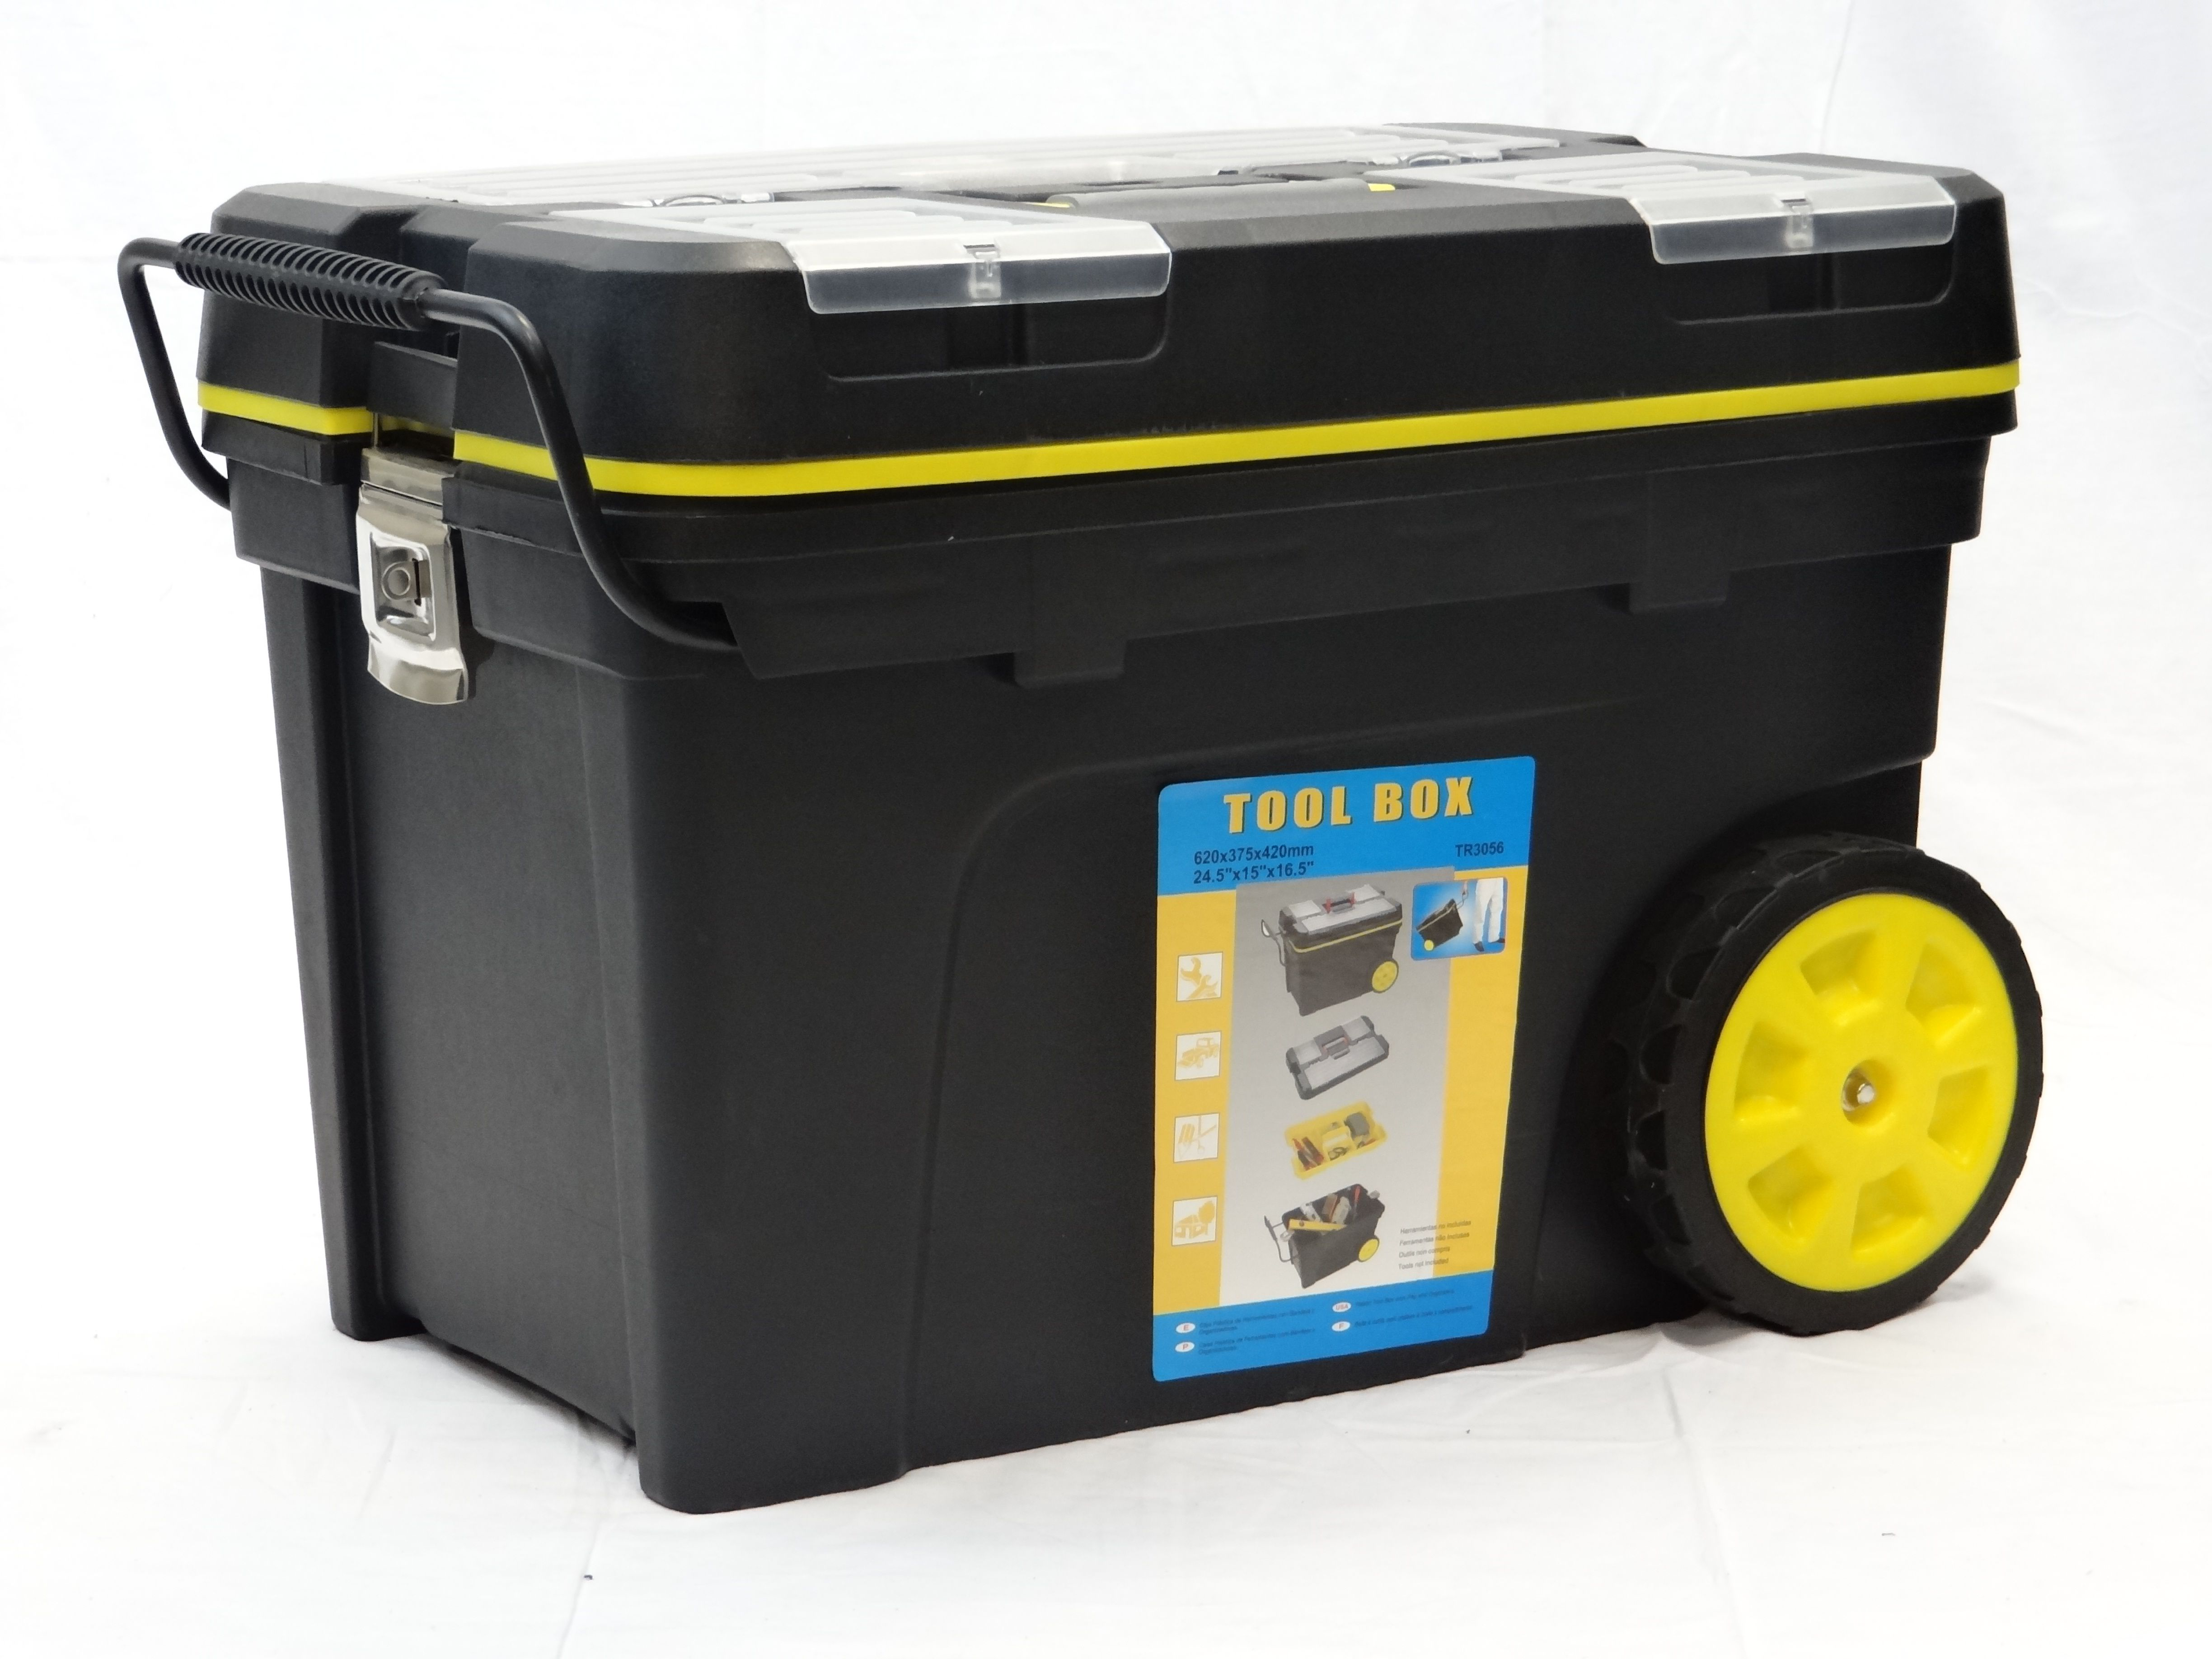 Tool box with wheels and pull out handle mobile tool case with extra storage pinterest - The mobile office working on two wheels ...